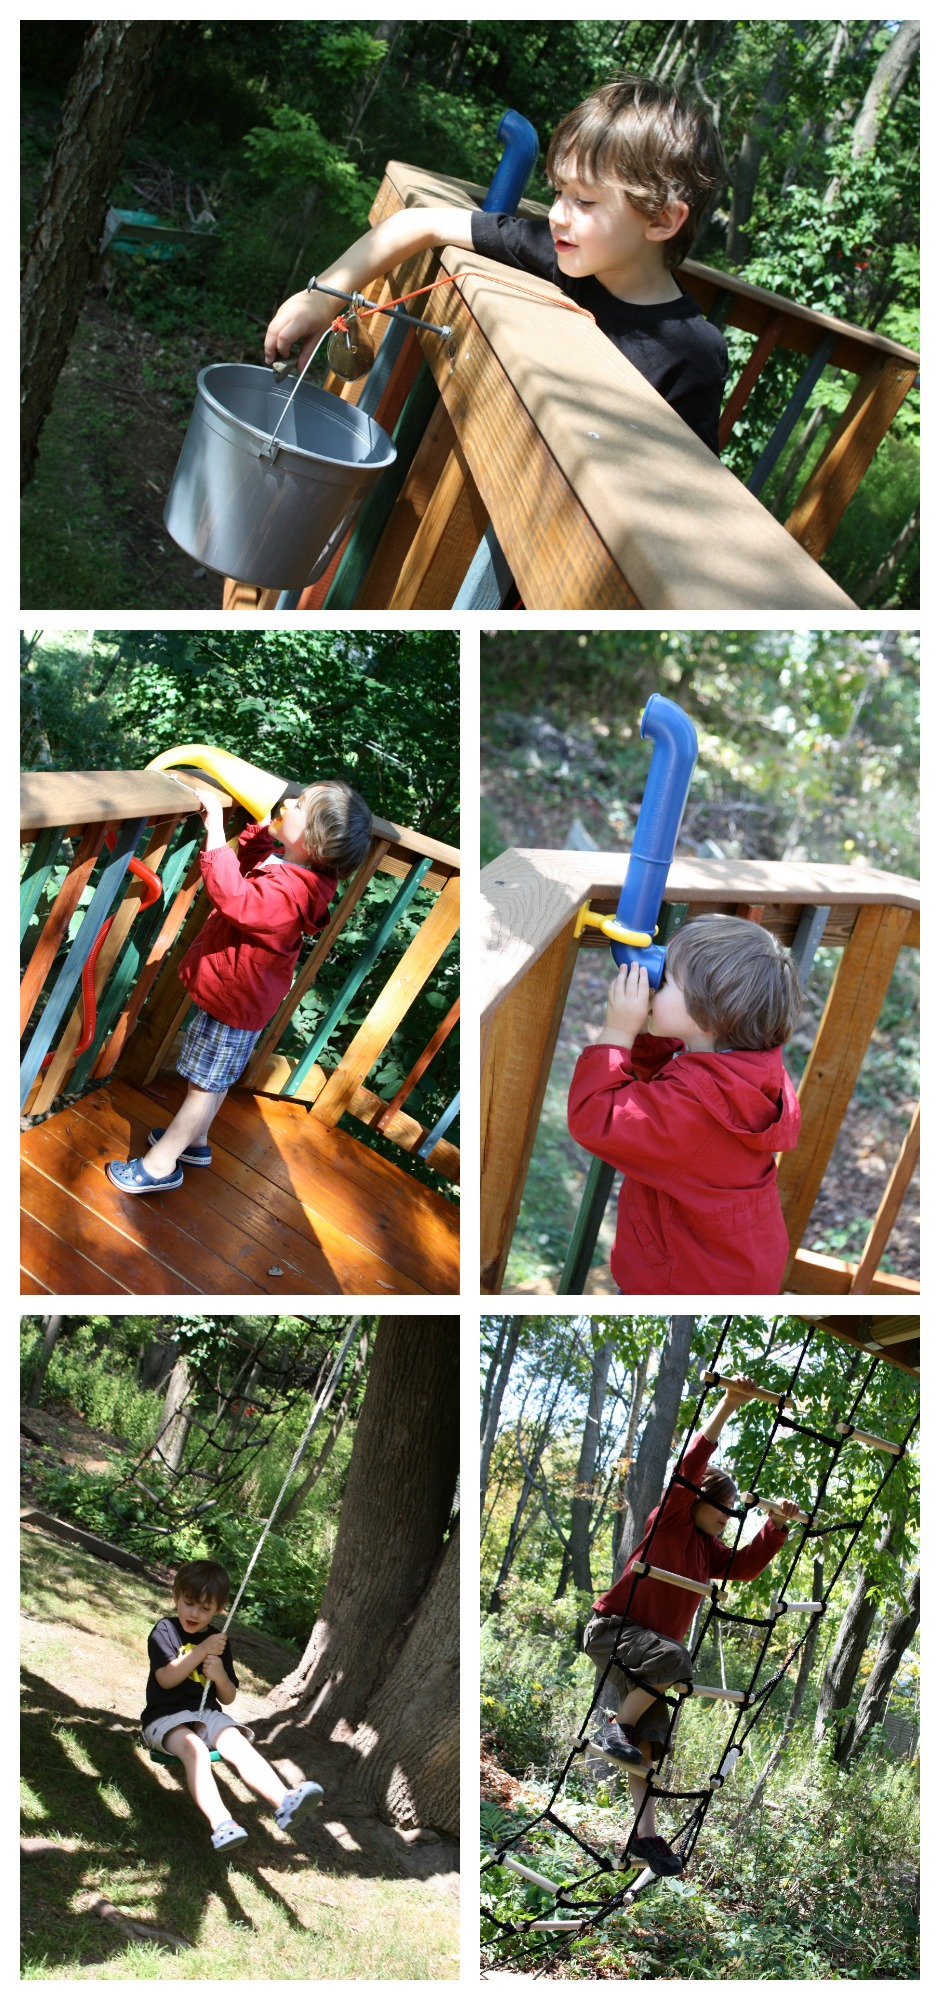 Fun things to include on a treehouse: bucket and pulley, talk tubes, periscope, disc swing, trapeze